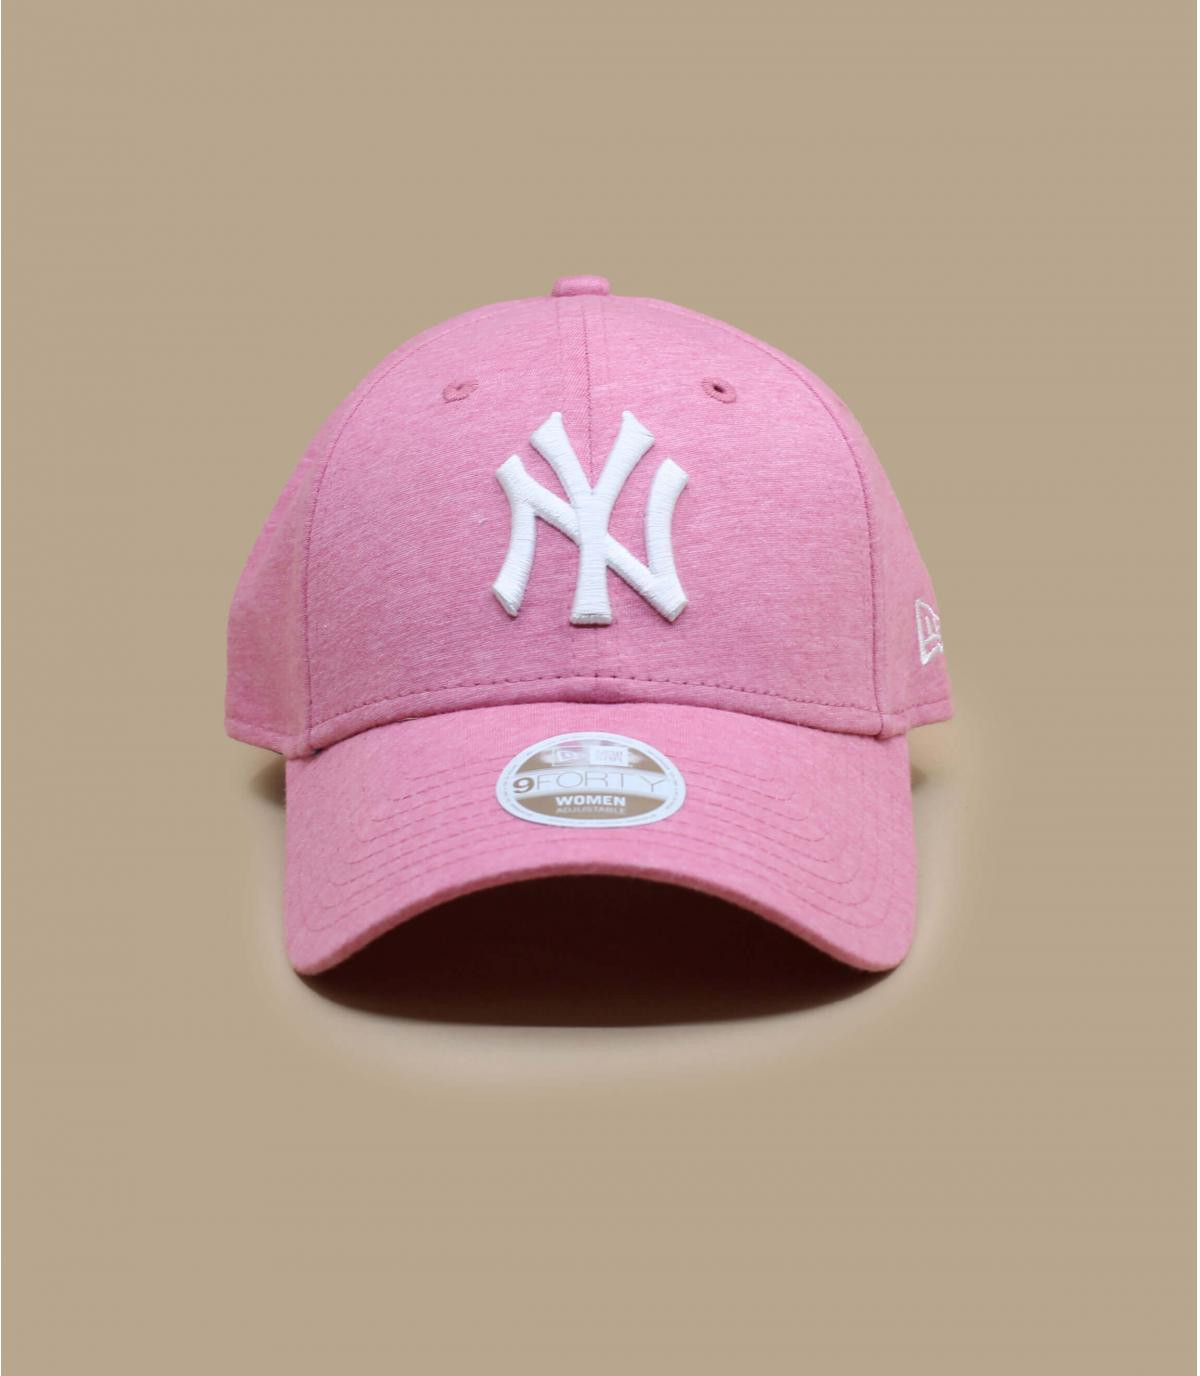 casquette NY femme rose